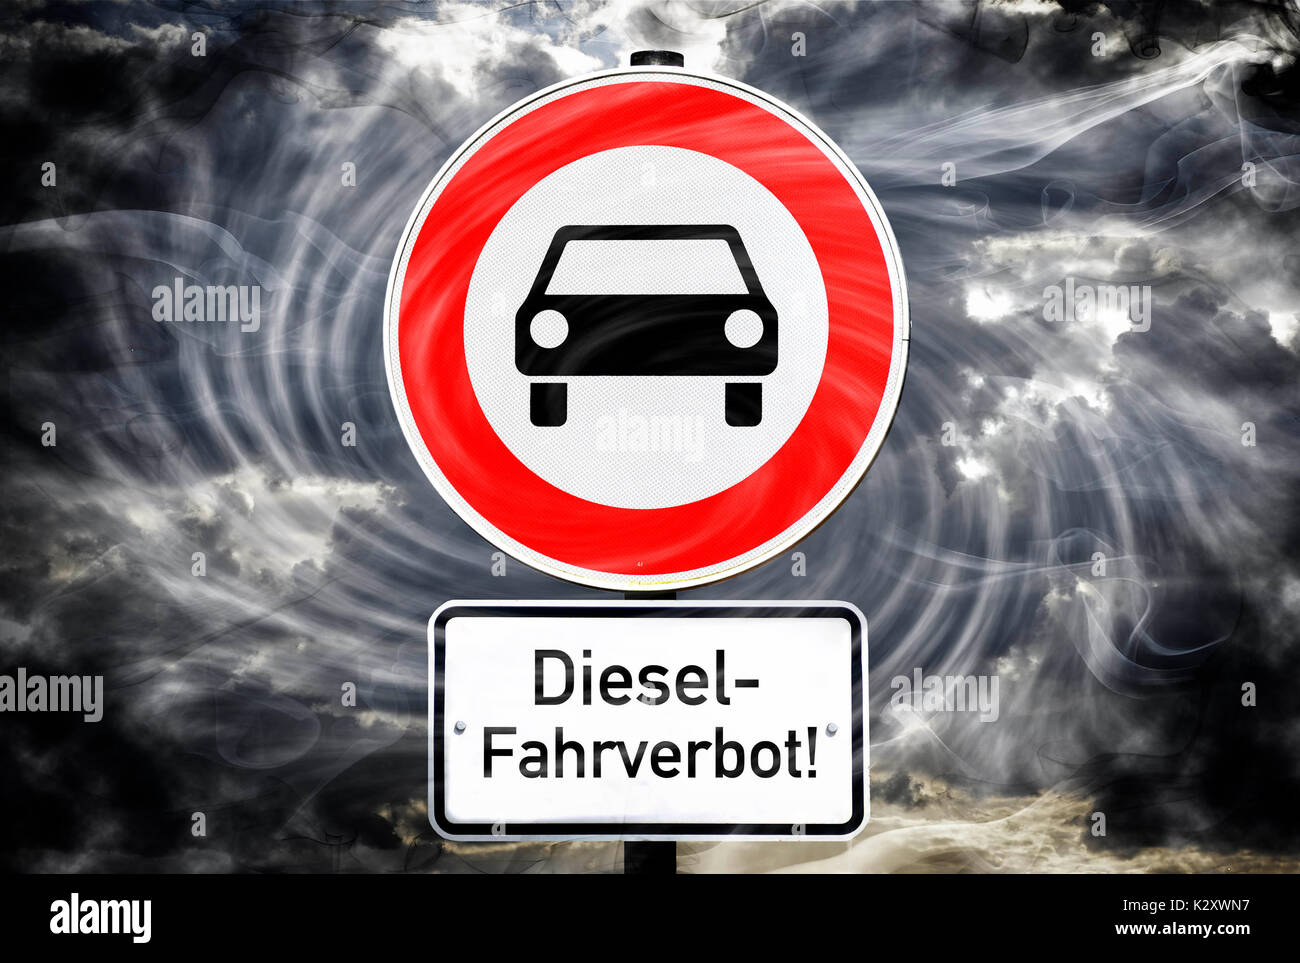 Sign Ban on driving for vehicle, diesel ban on driving, Schild Fahrverbot fuer Kfz, Diesel-Fahrverbot - Stock Image